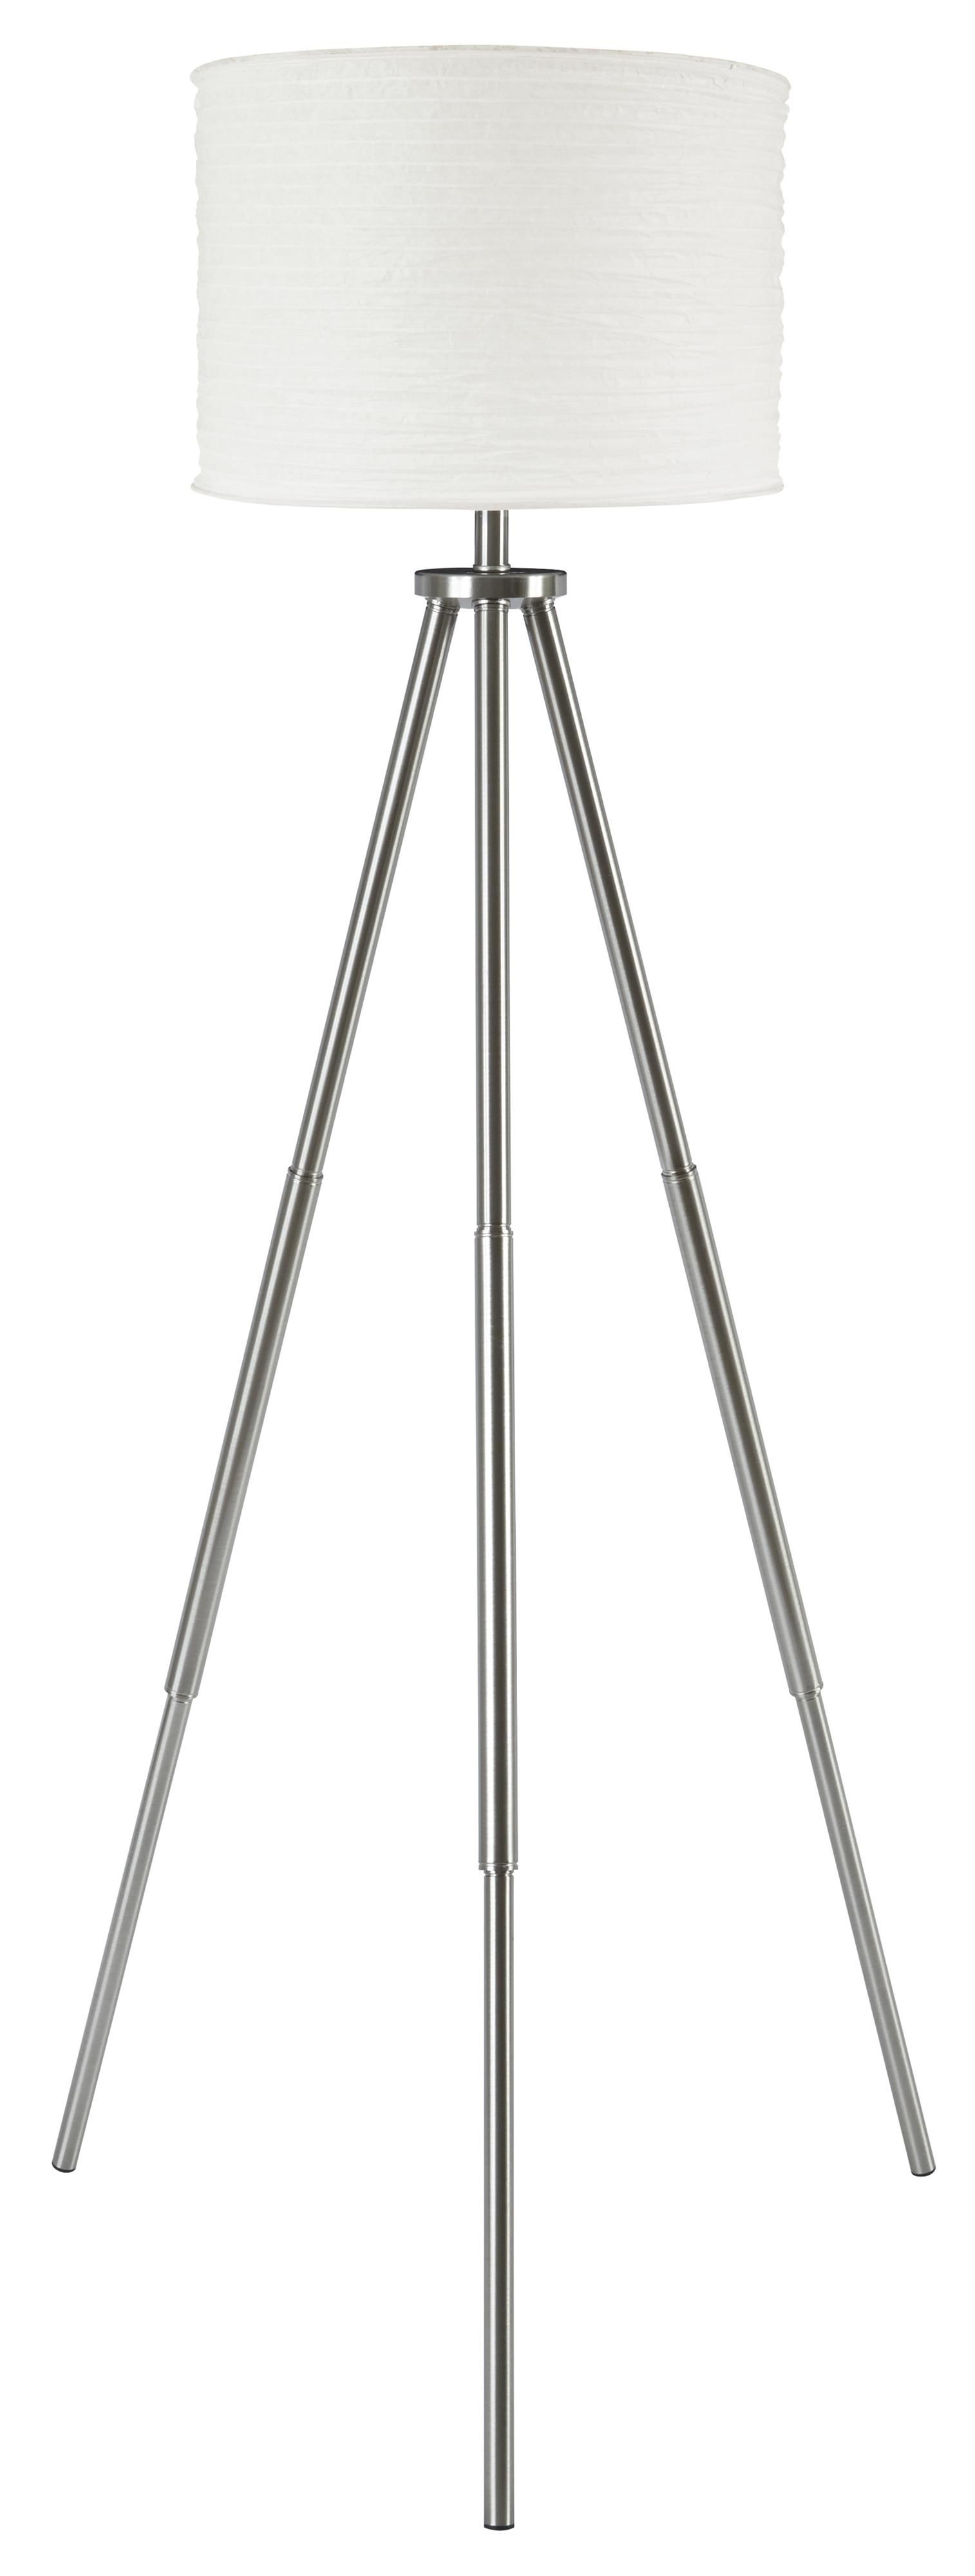 Lamps - Contemporary Susette Metal Floor Lamp by Signature Design by Ashley